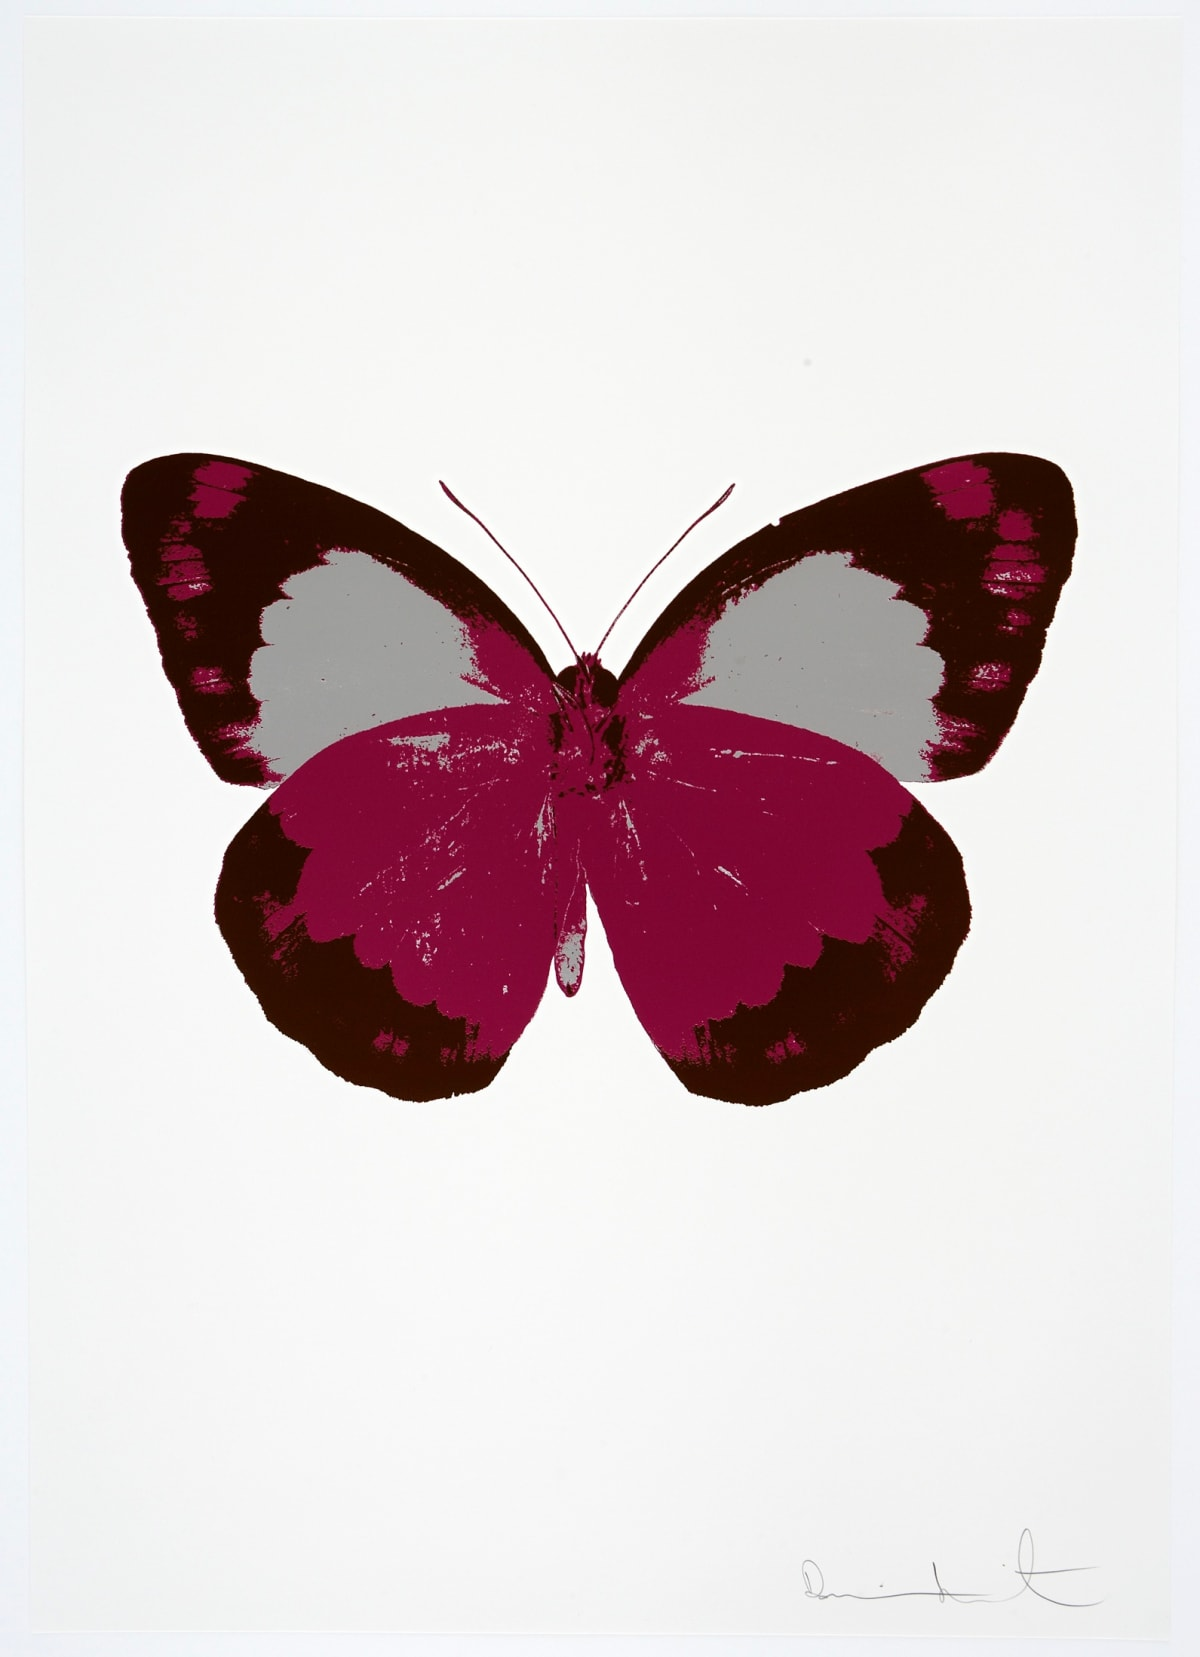 Damien Hirst The Souls II - Fuchsia Pink/Chocolate/Silver Gloss, 2010 3 colour foil block on 300gsm Arches 88 archival paper. Signed and numbered. Published by Paul Stolper and Other Criteria 72 x 51cm OC7872 / 658-55 Edition of 15